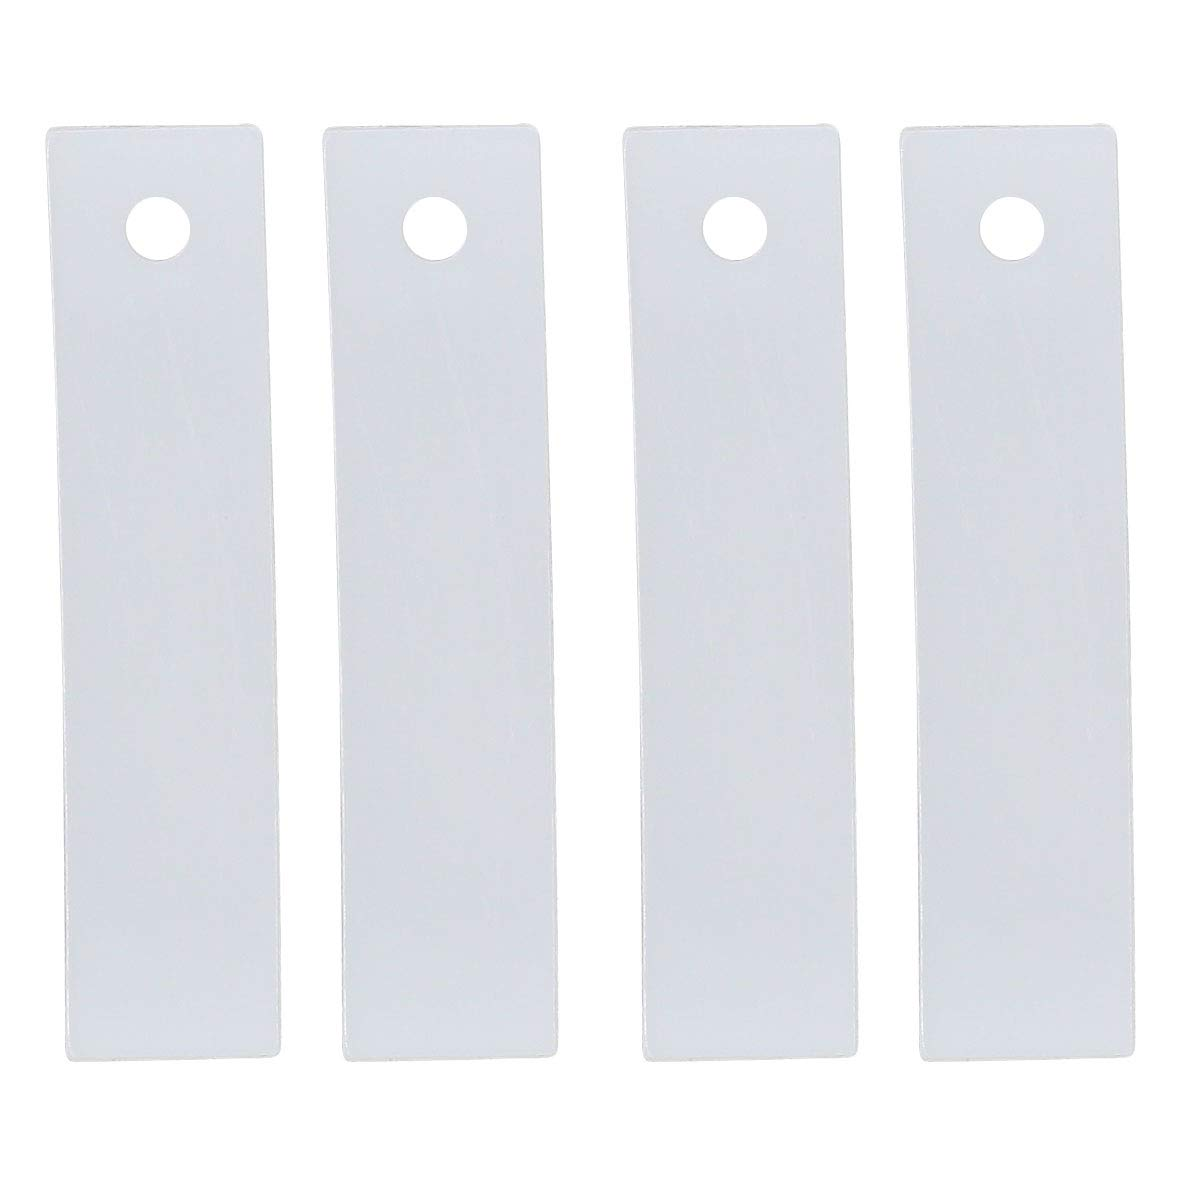 ApplianPar 4 Pack WE1M504 Dryer Front Drum Glide Slide kit for GE WE1M333 PS755842 963512